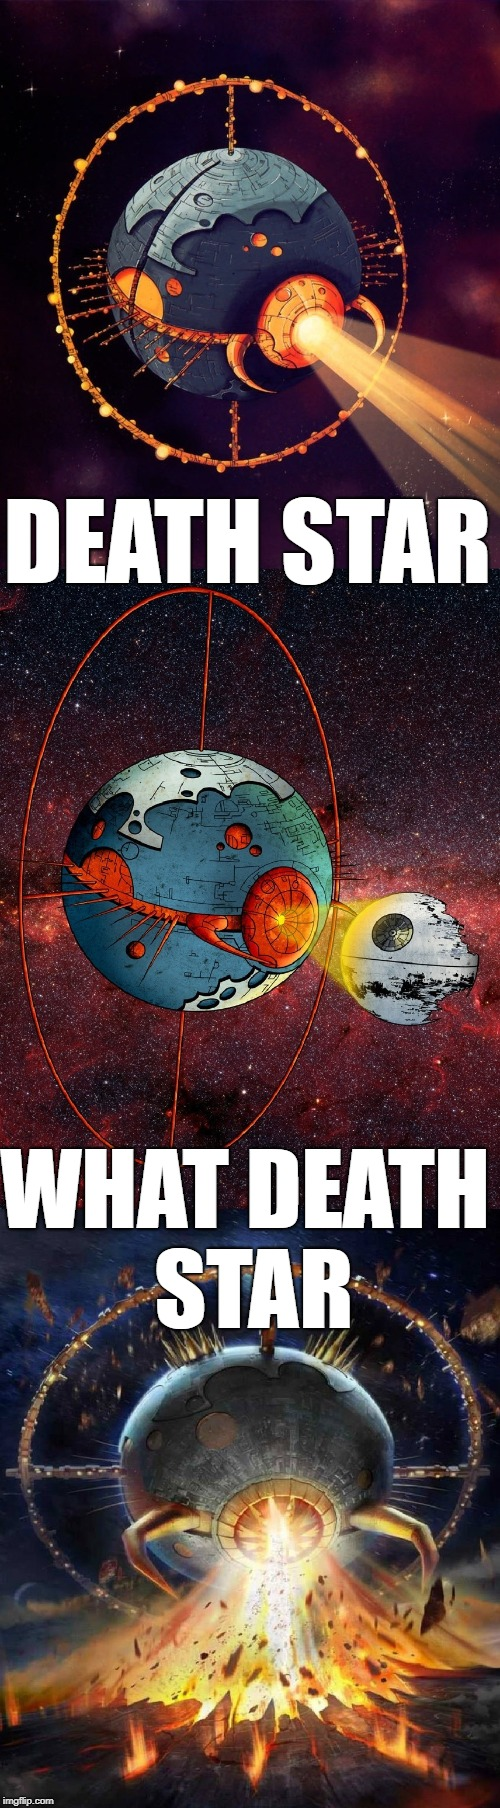 DEATH STAR WHAT DEATH STAR | image tagged in star wars,death star,transformers g1,unicron | made w/ Imgflip meme maker